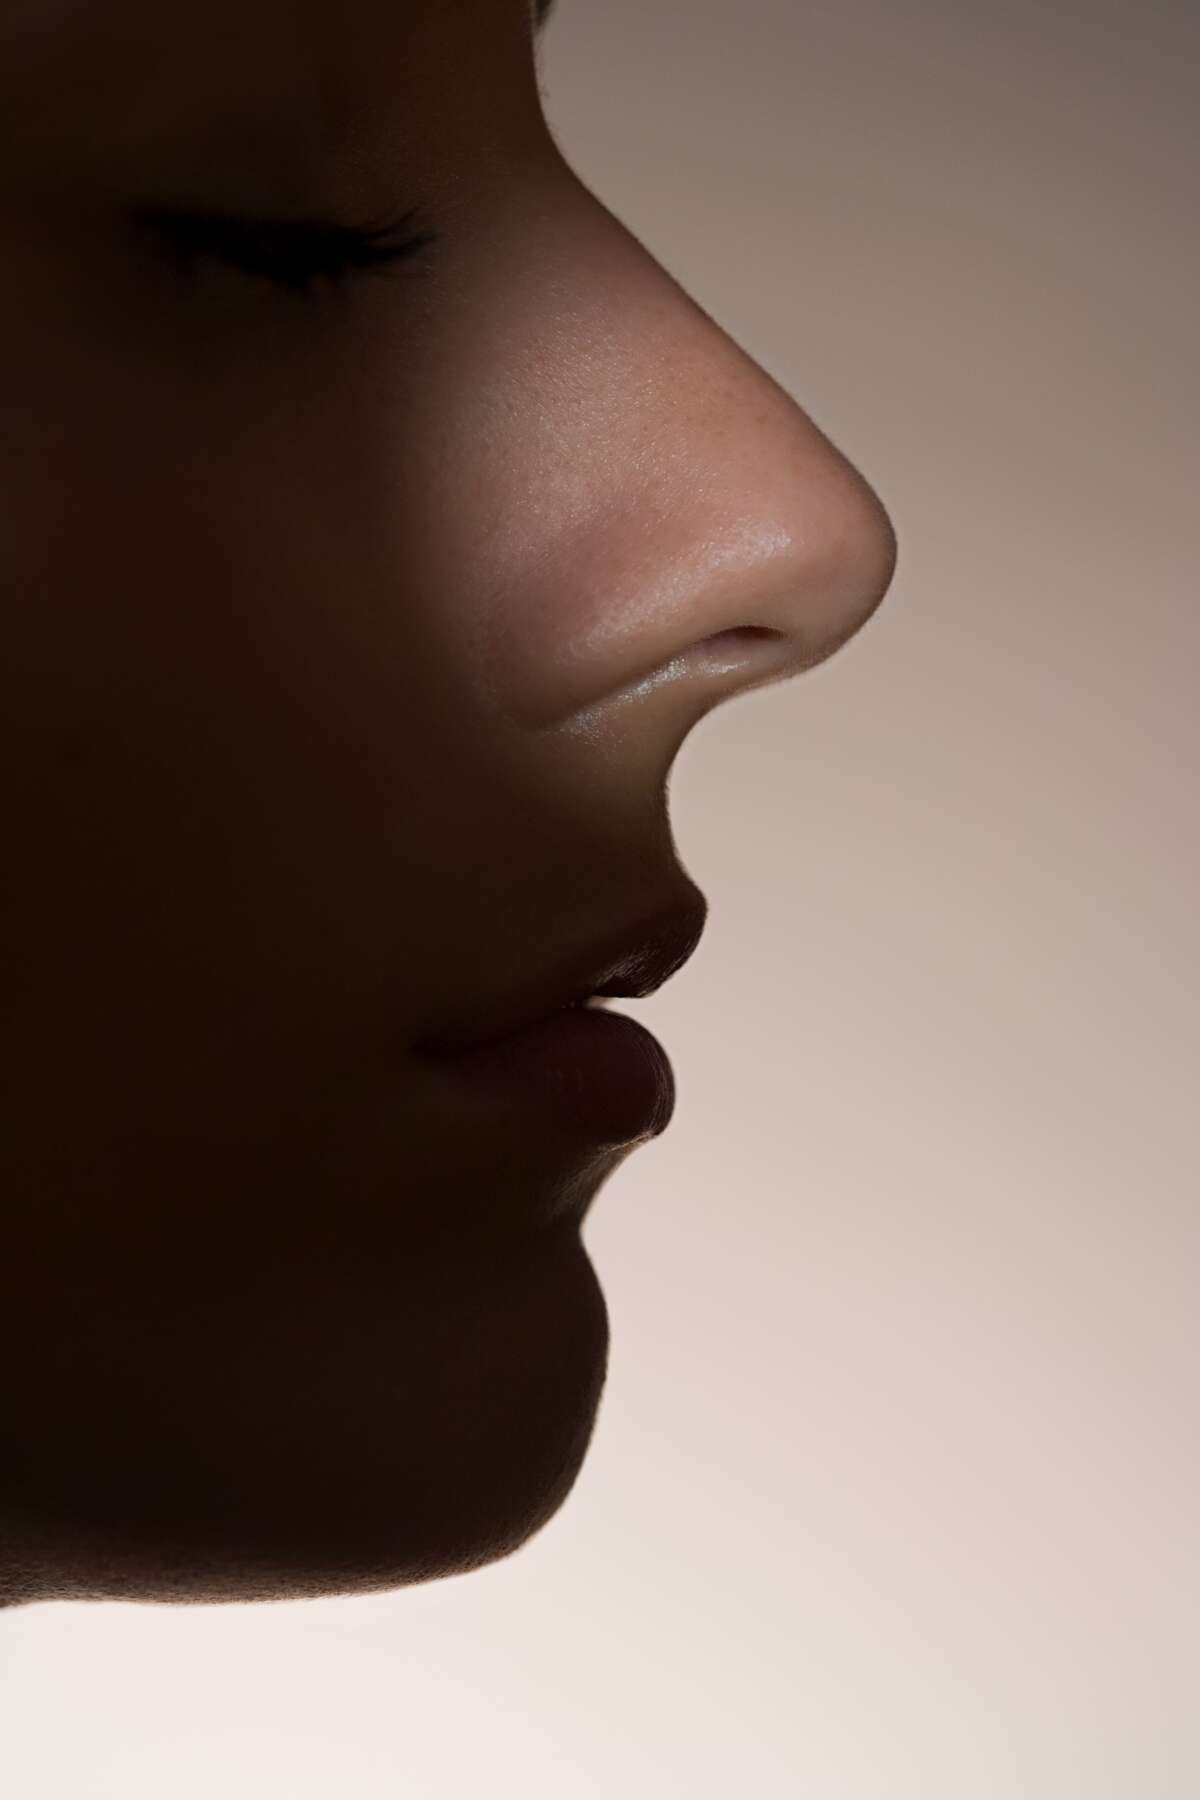 The nose knows illness A recent study published by the Association for Psychological Science found that people are able to smell sickness in someone whose immune system is highly active. What's more, it was detected in subjects who were exposed to a toxin just a few hours prior.